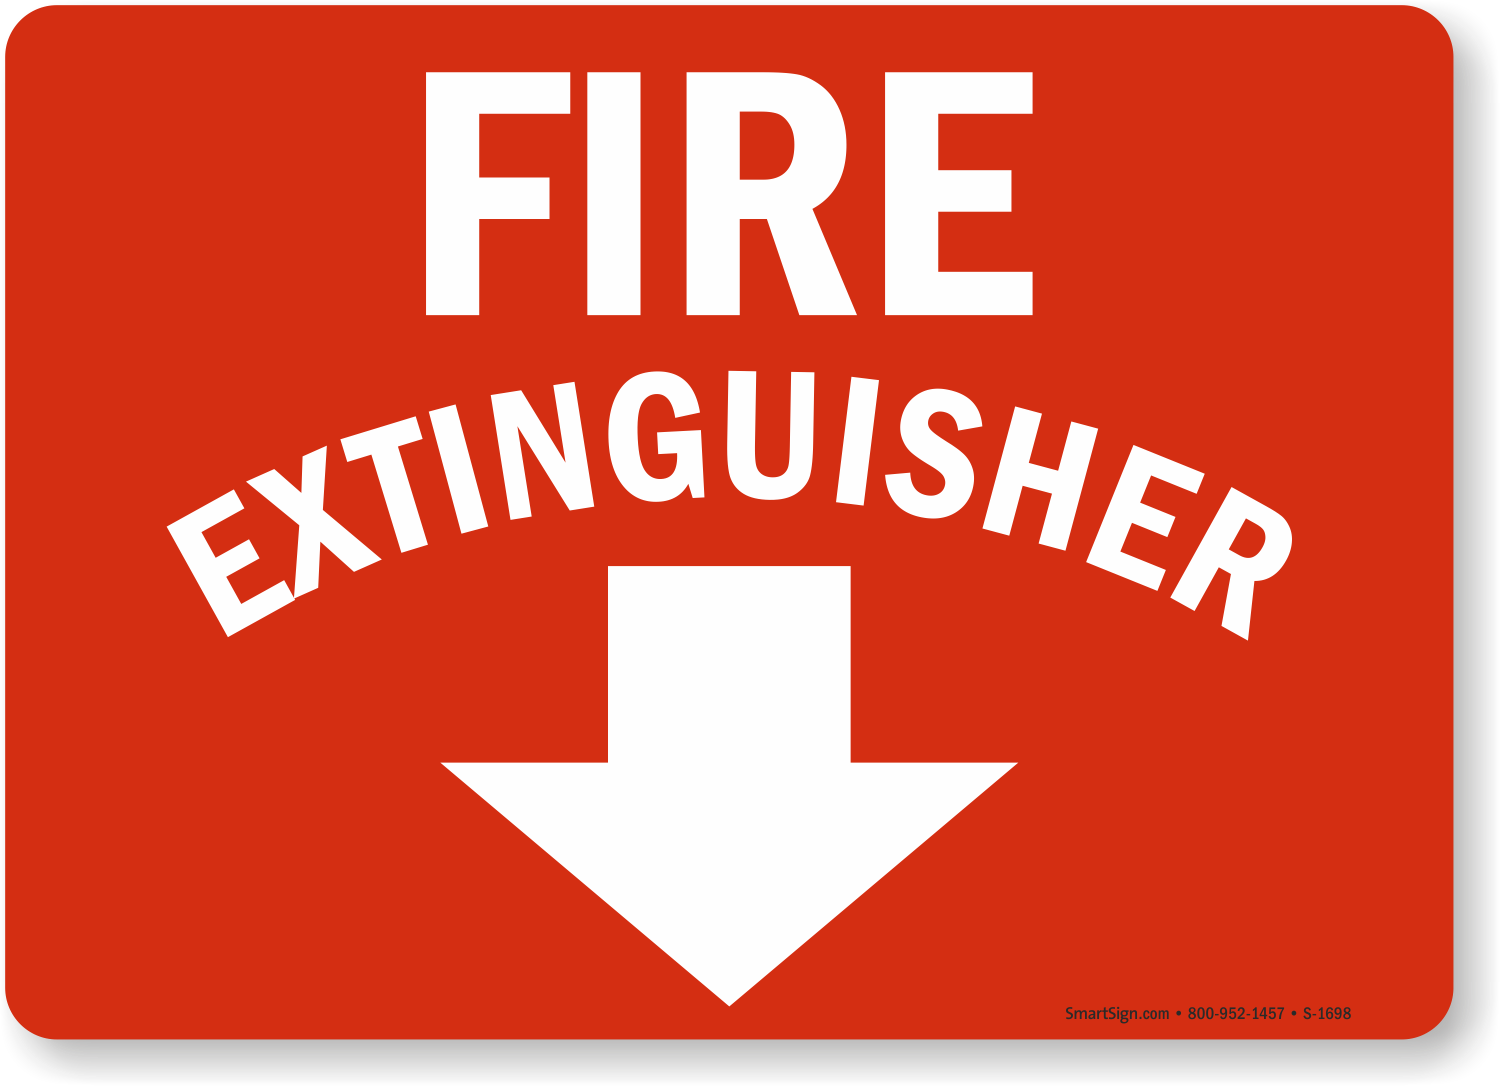 fire extinguisher emergency sign s 1698